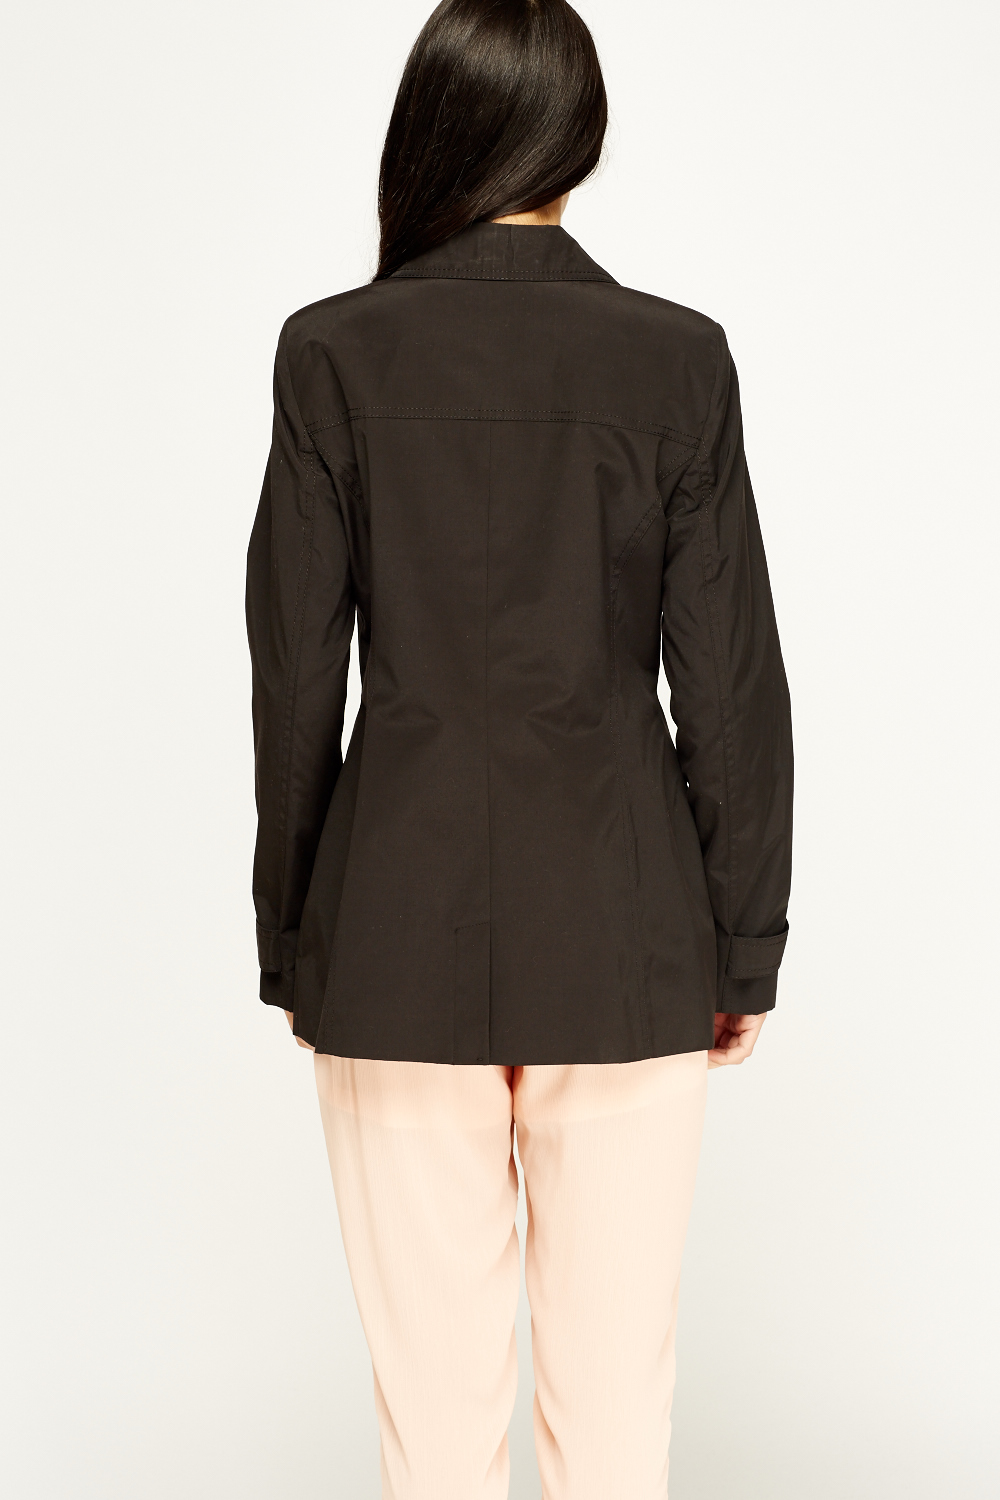 Turn to a belted black jacket to finish off a fashionable appearance. Go with a women's black pea coat for a preppy, fitted look. Stay cozy in any situation with a women's wool coat in black. Uncovering on-trend women's coats is easy. Stay trendy and professional in a women's belted coat from Steve Madden.